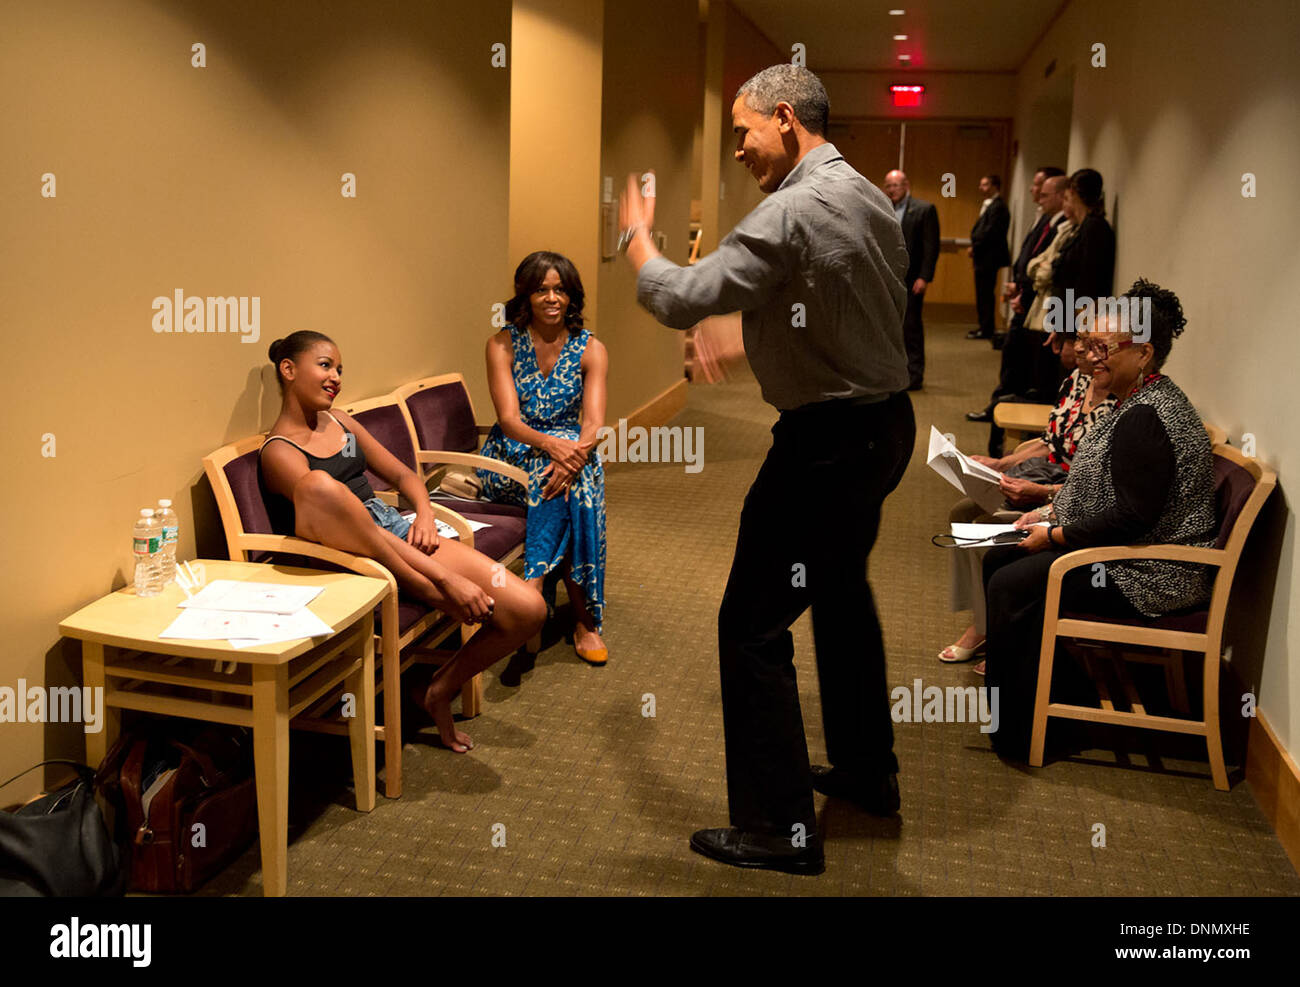 US President Barack Obama shows off his dance moves as he and the First Lady waited backstage during an intermission of daughter Sasha's dance recital at Strathmore Arts Center June 16, 2013 in North Bethesda, Maryland. - Stock Image